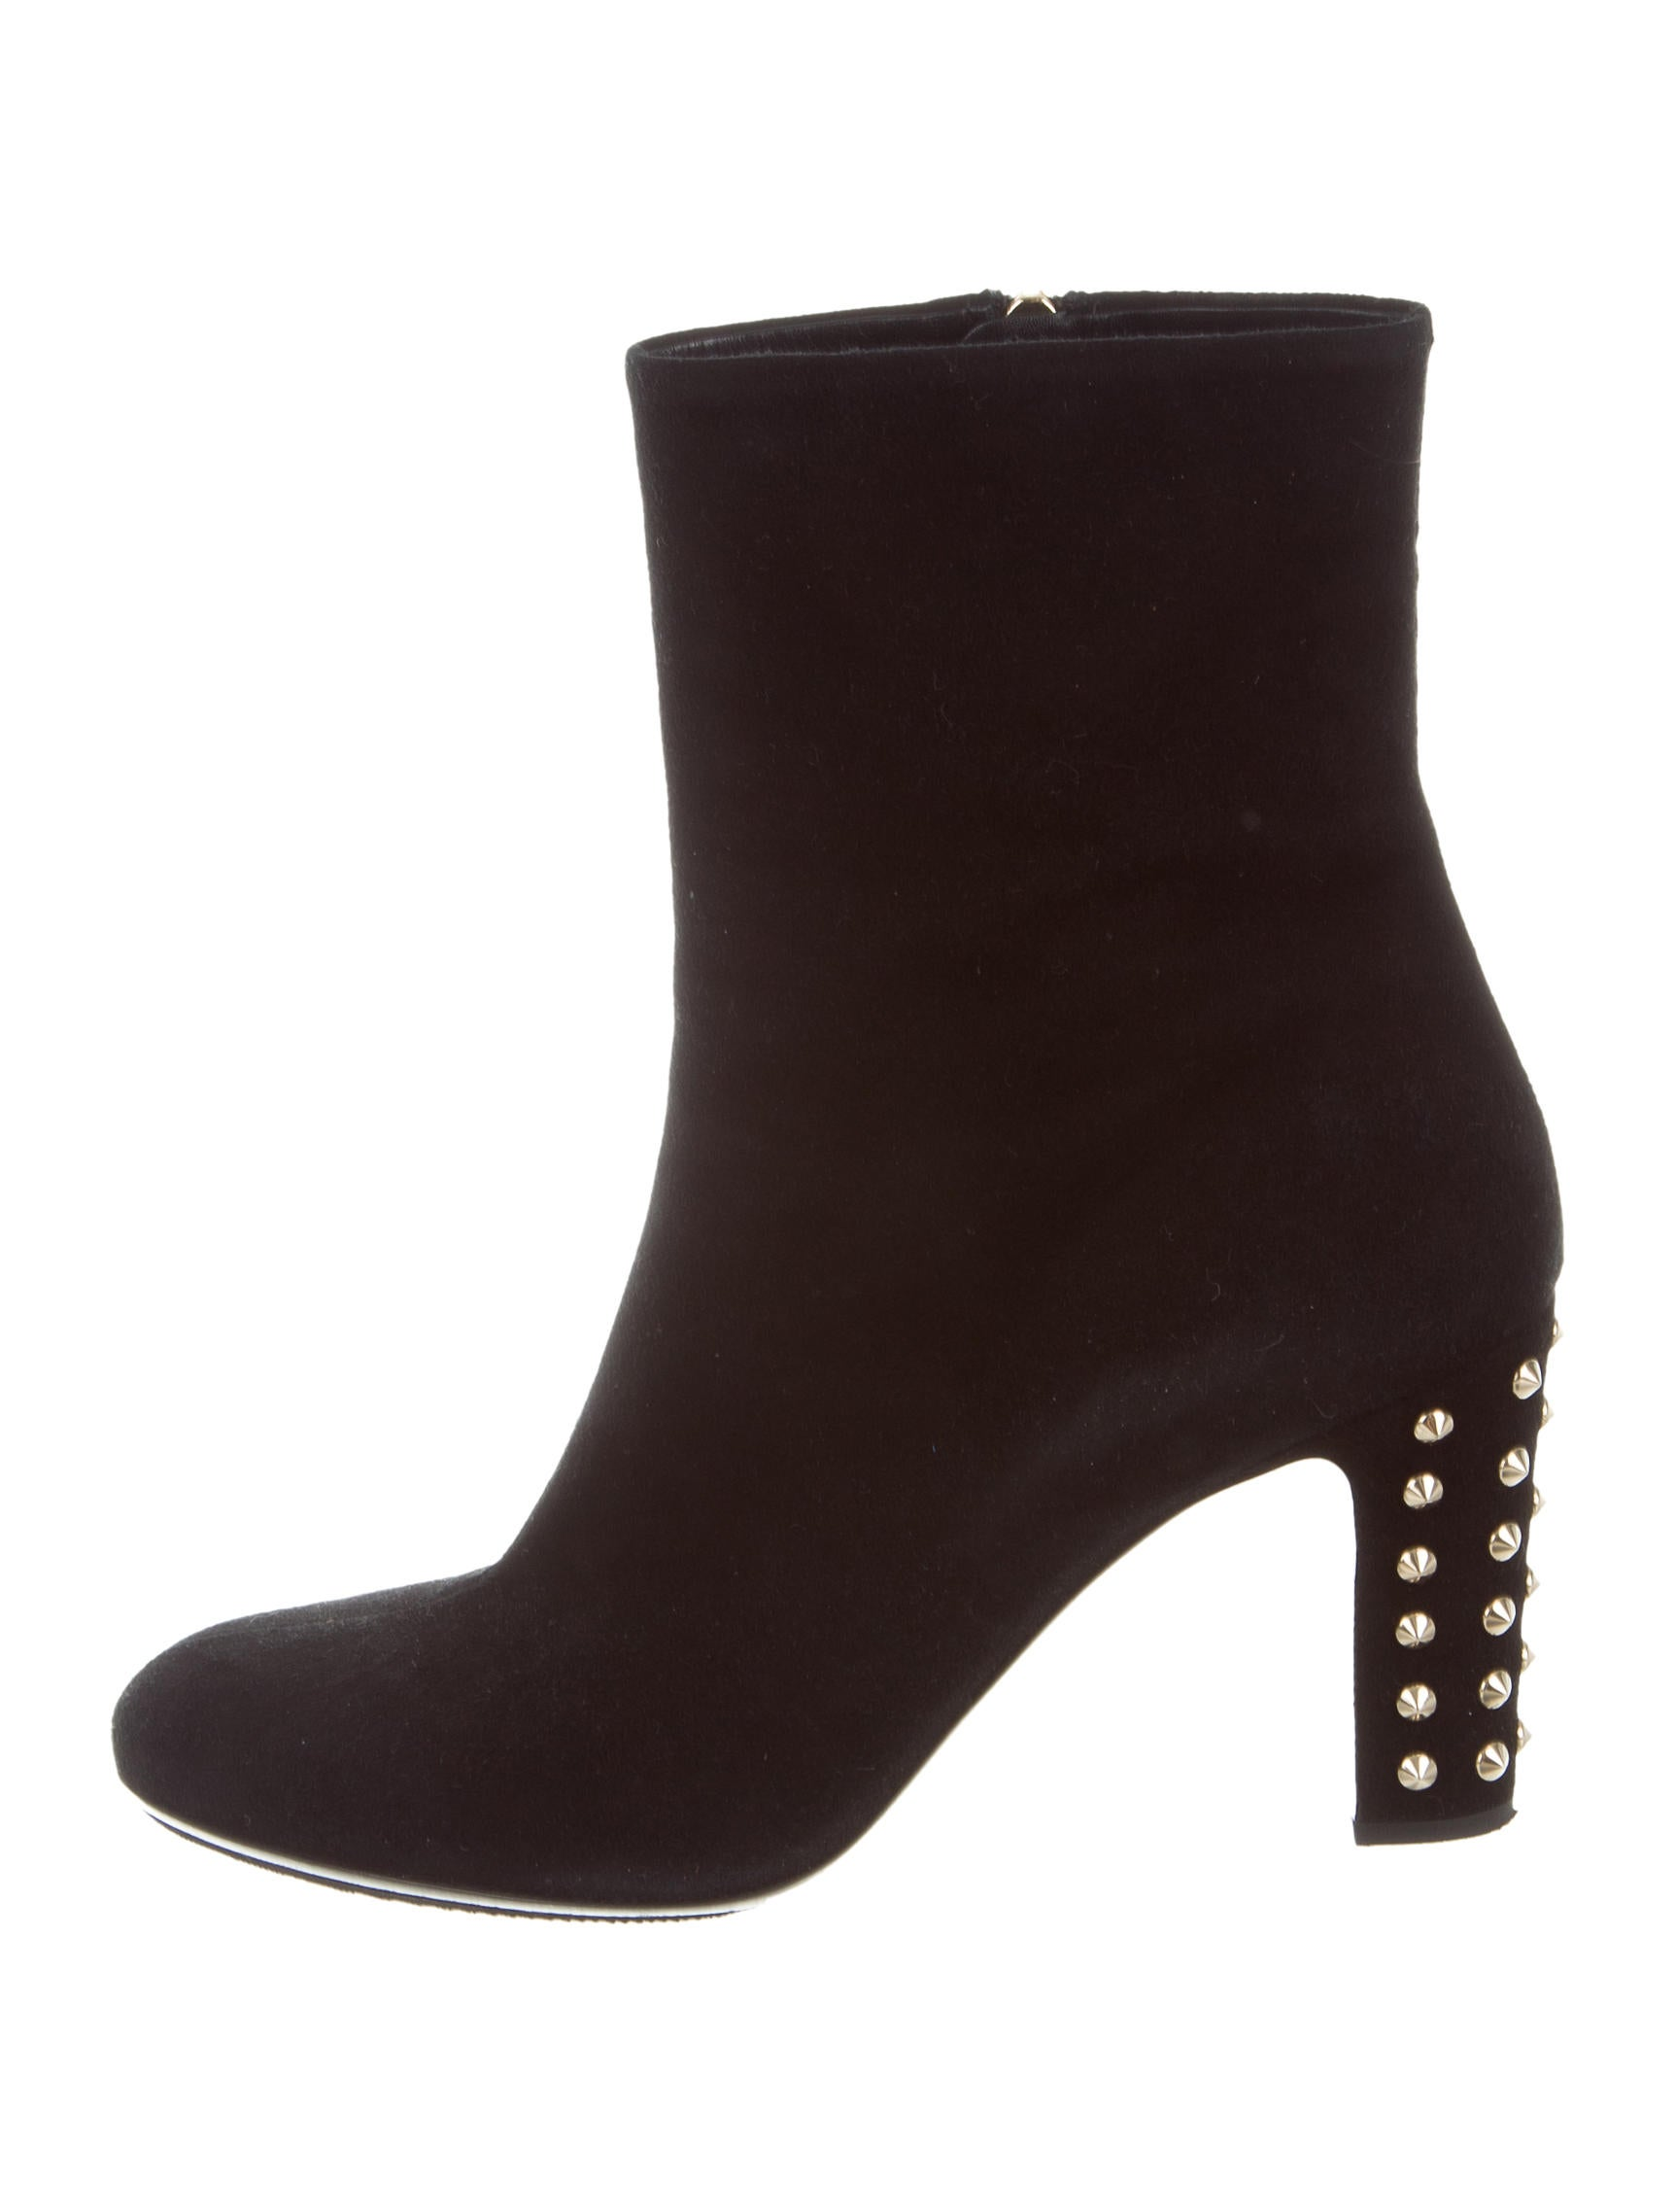 gucci studded suede boots shoes guc156593 the realreal